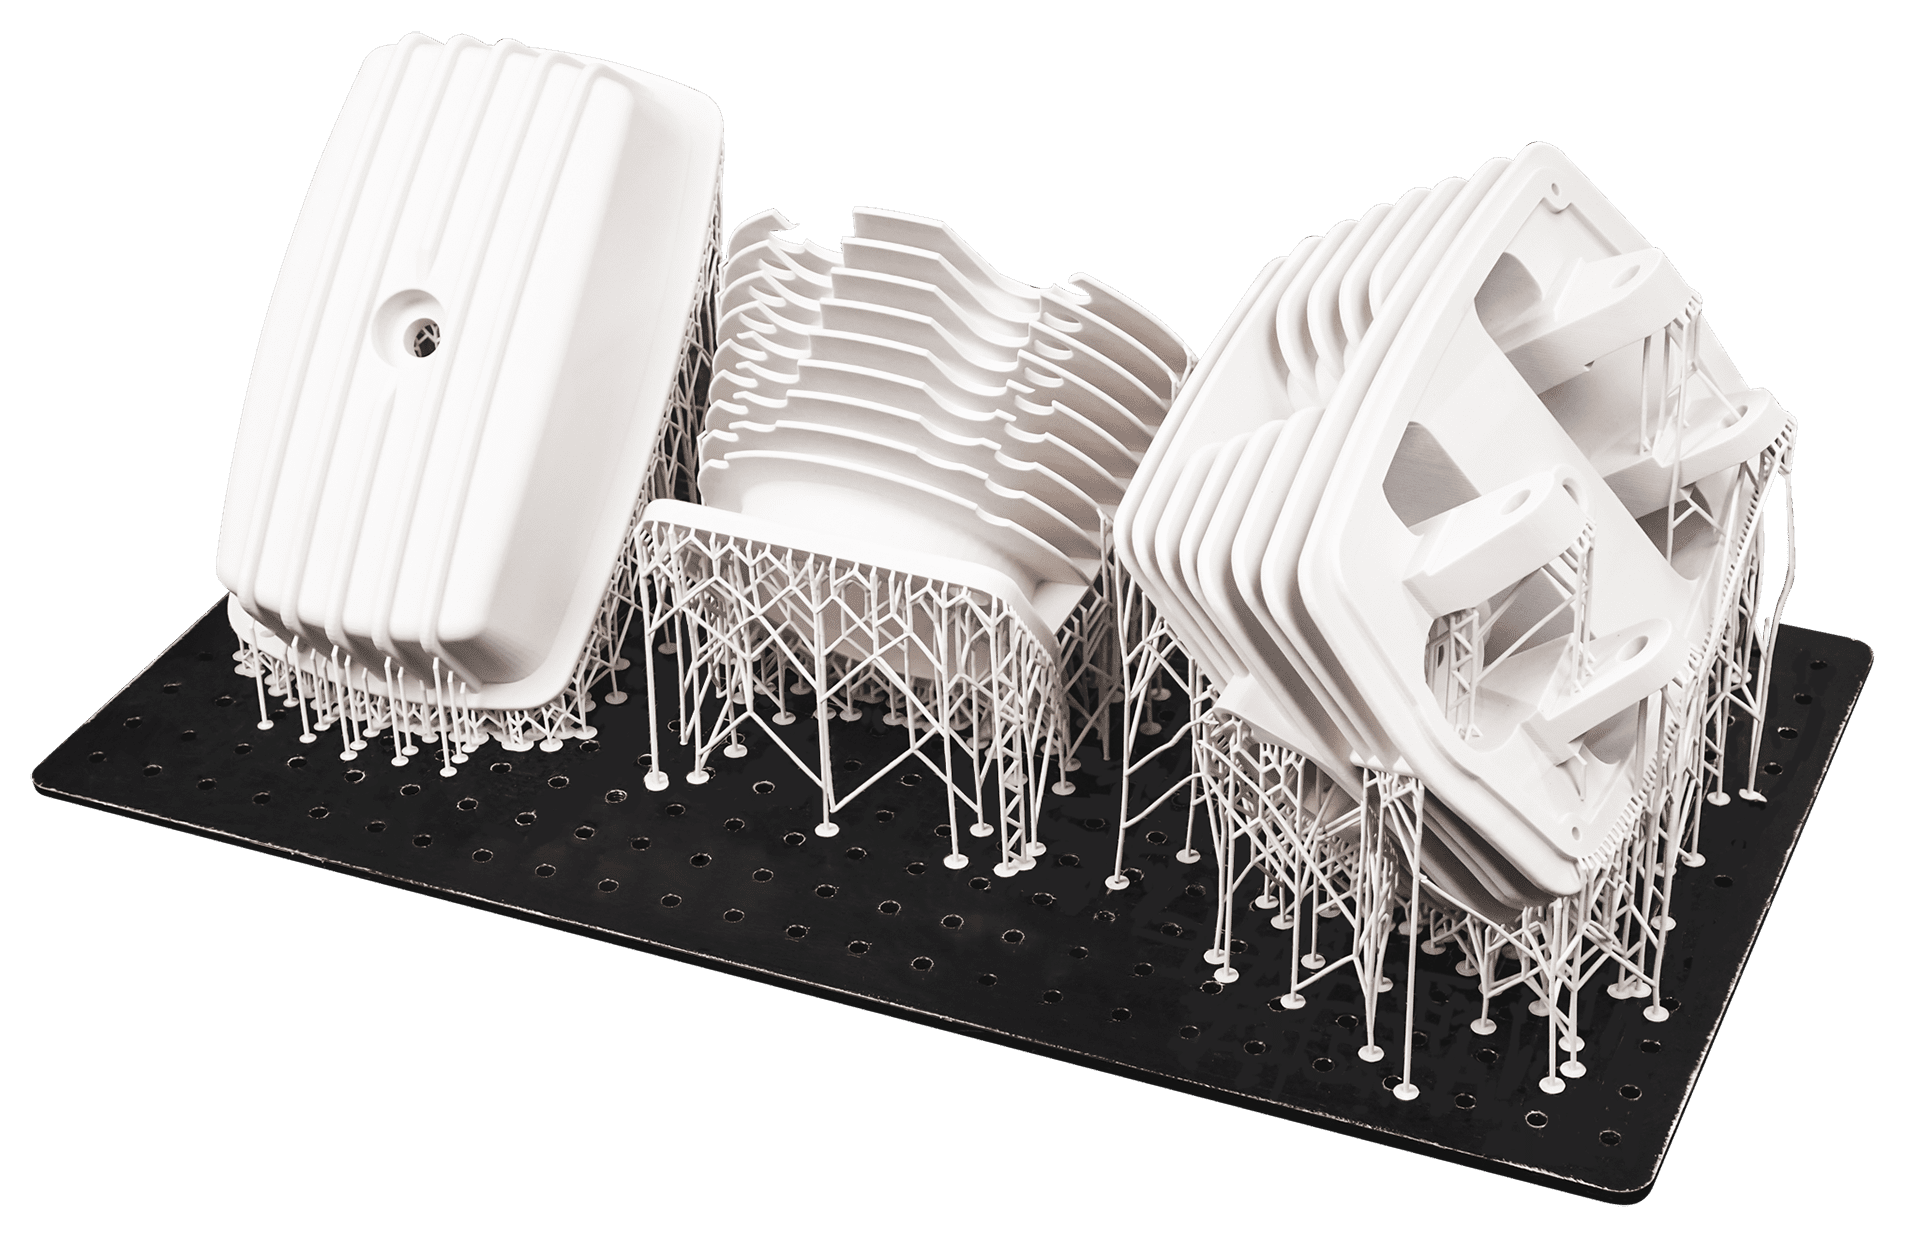 3D-Druck mit Support Material